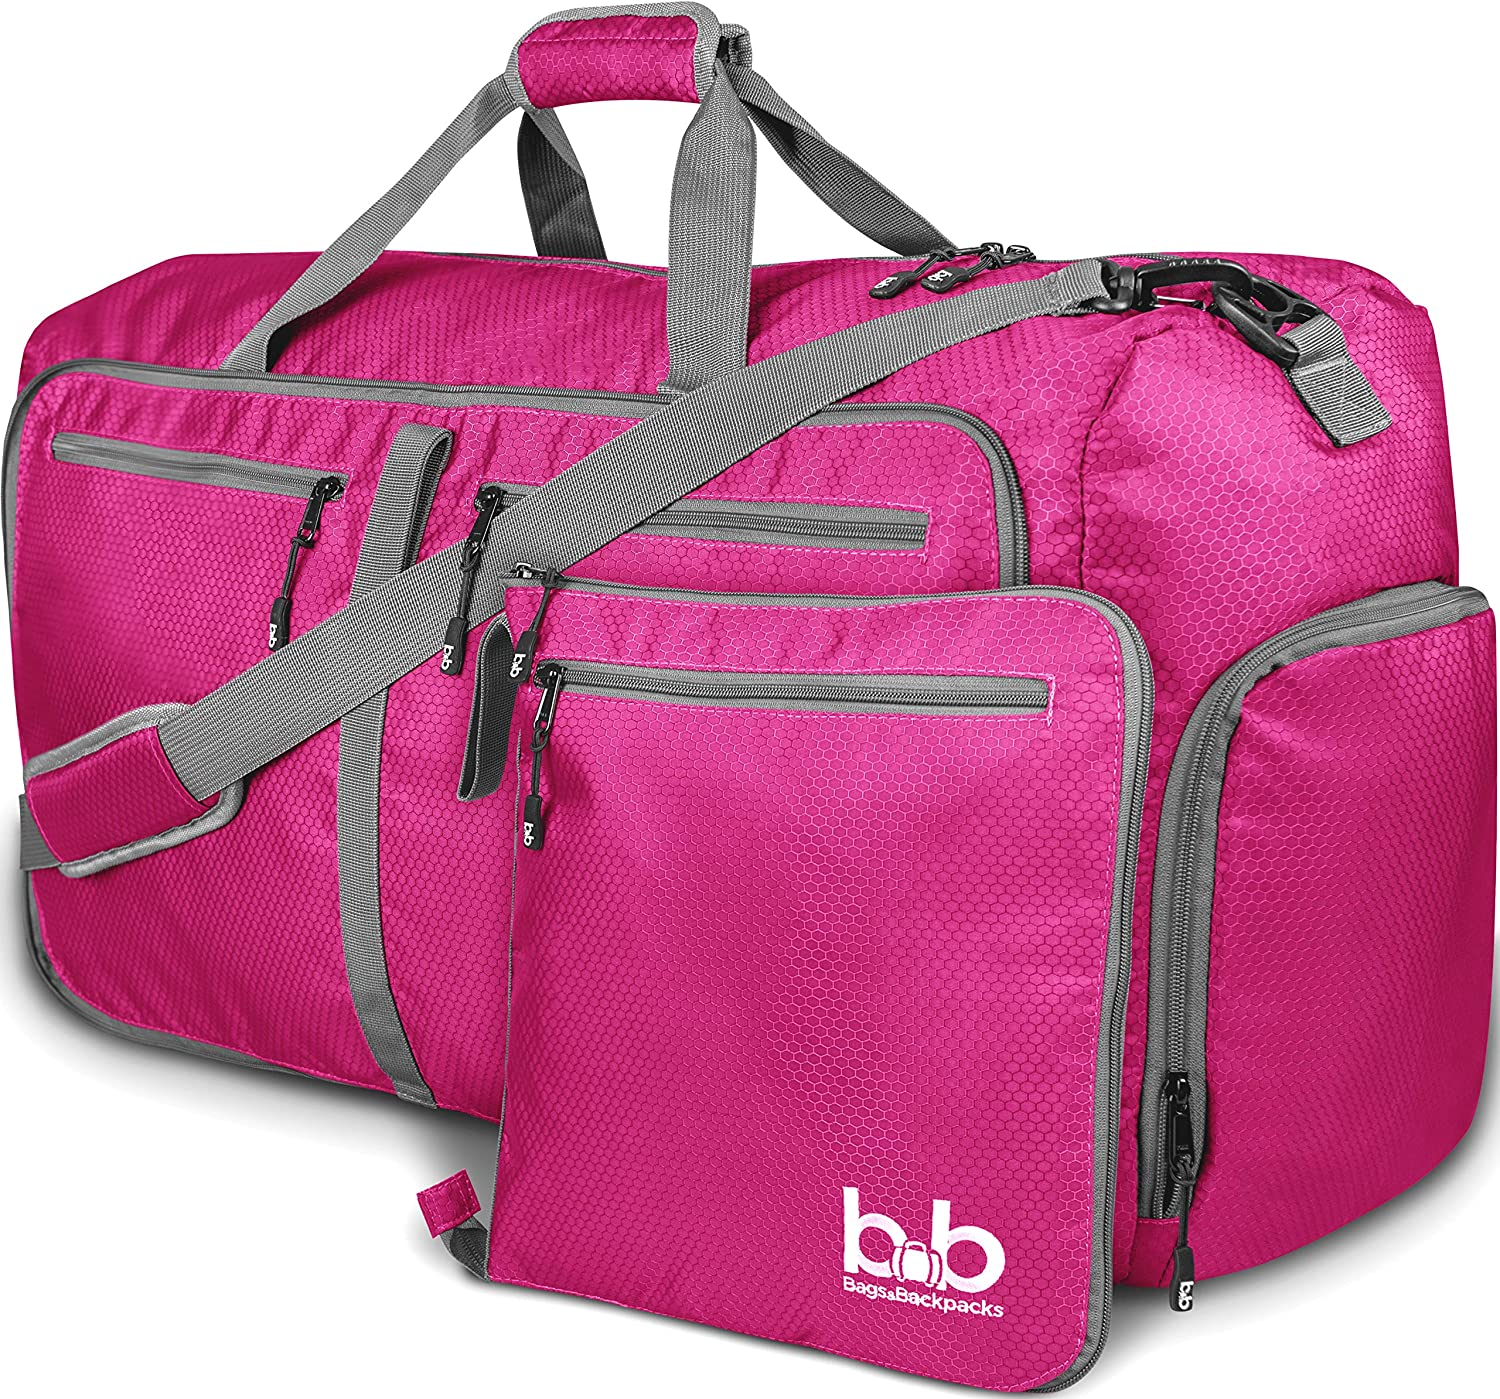 45d5251a345 Amazon.com | Extra Large Duffle Bag with Pockets - Travel Duffel Bag for  Women and Men (Pink) | Travel Duffels